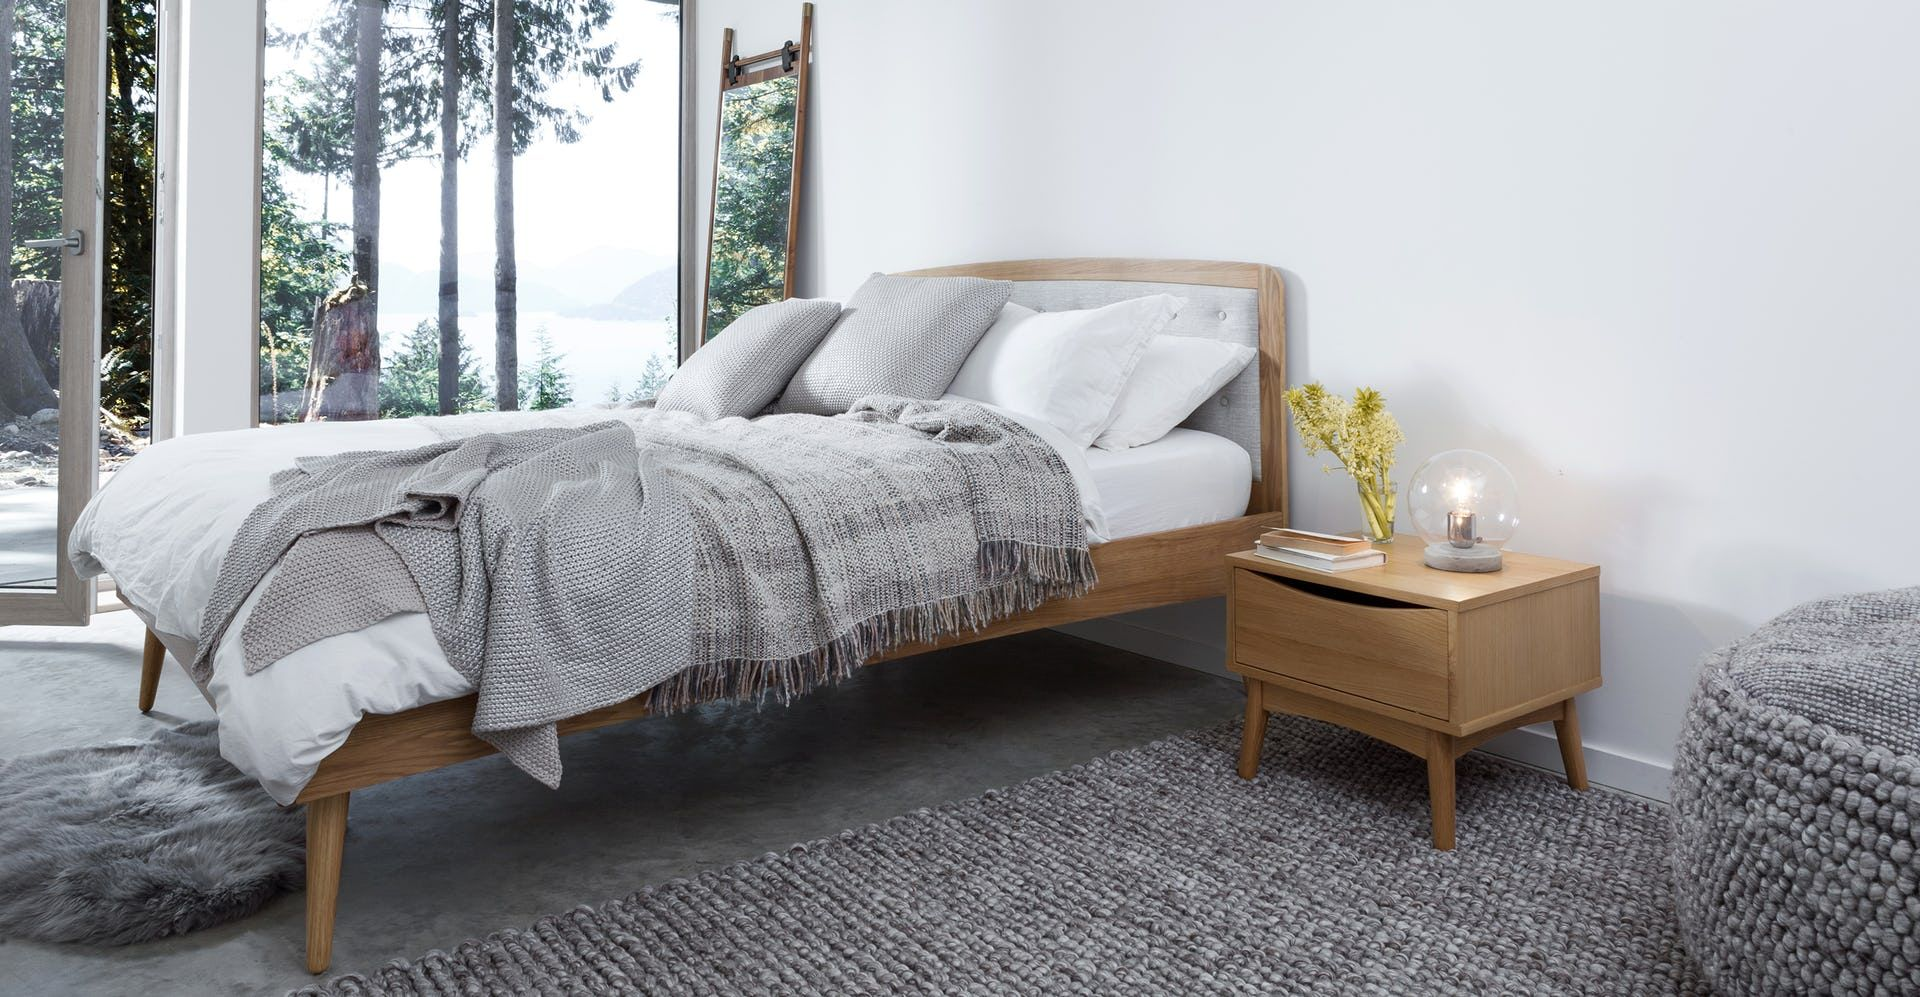 Wake up in the midcentury modern bedroom of your dreams